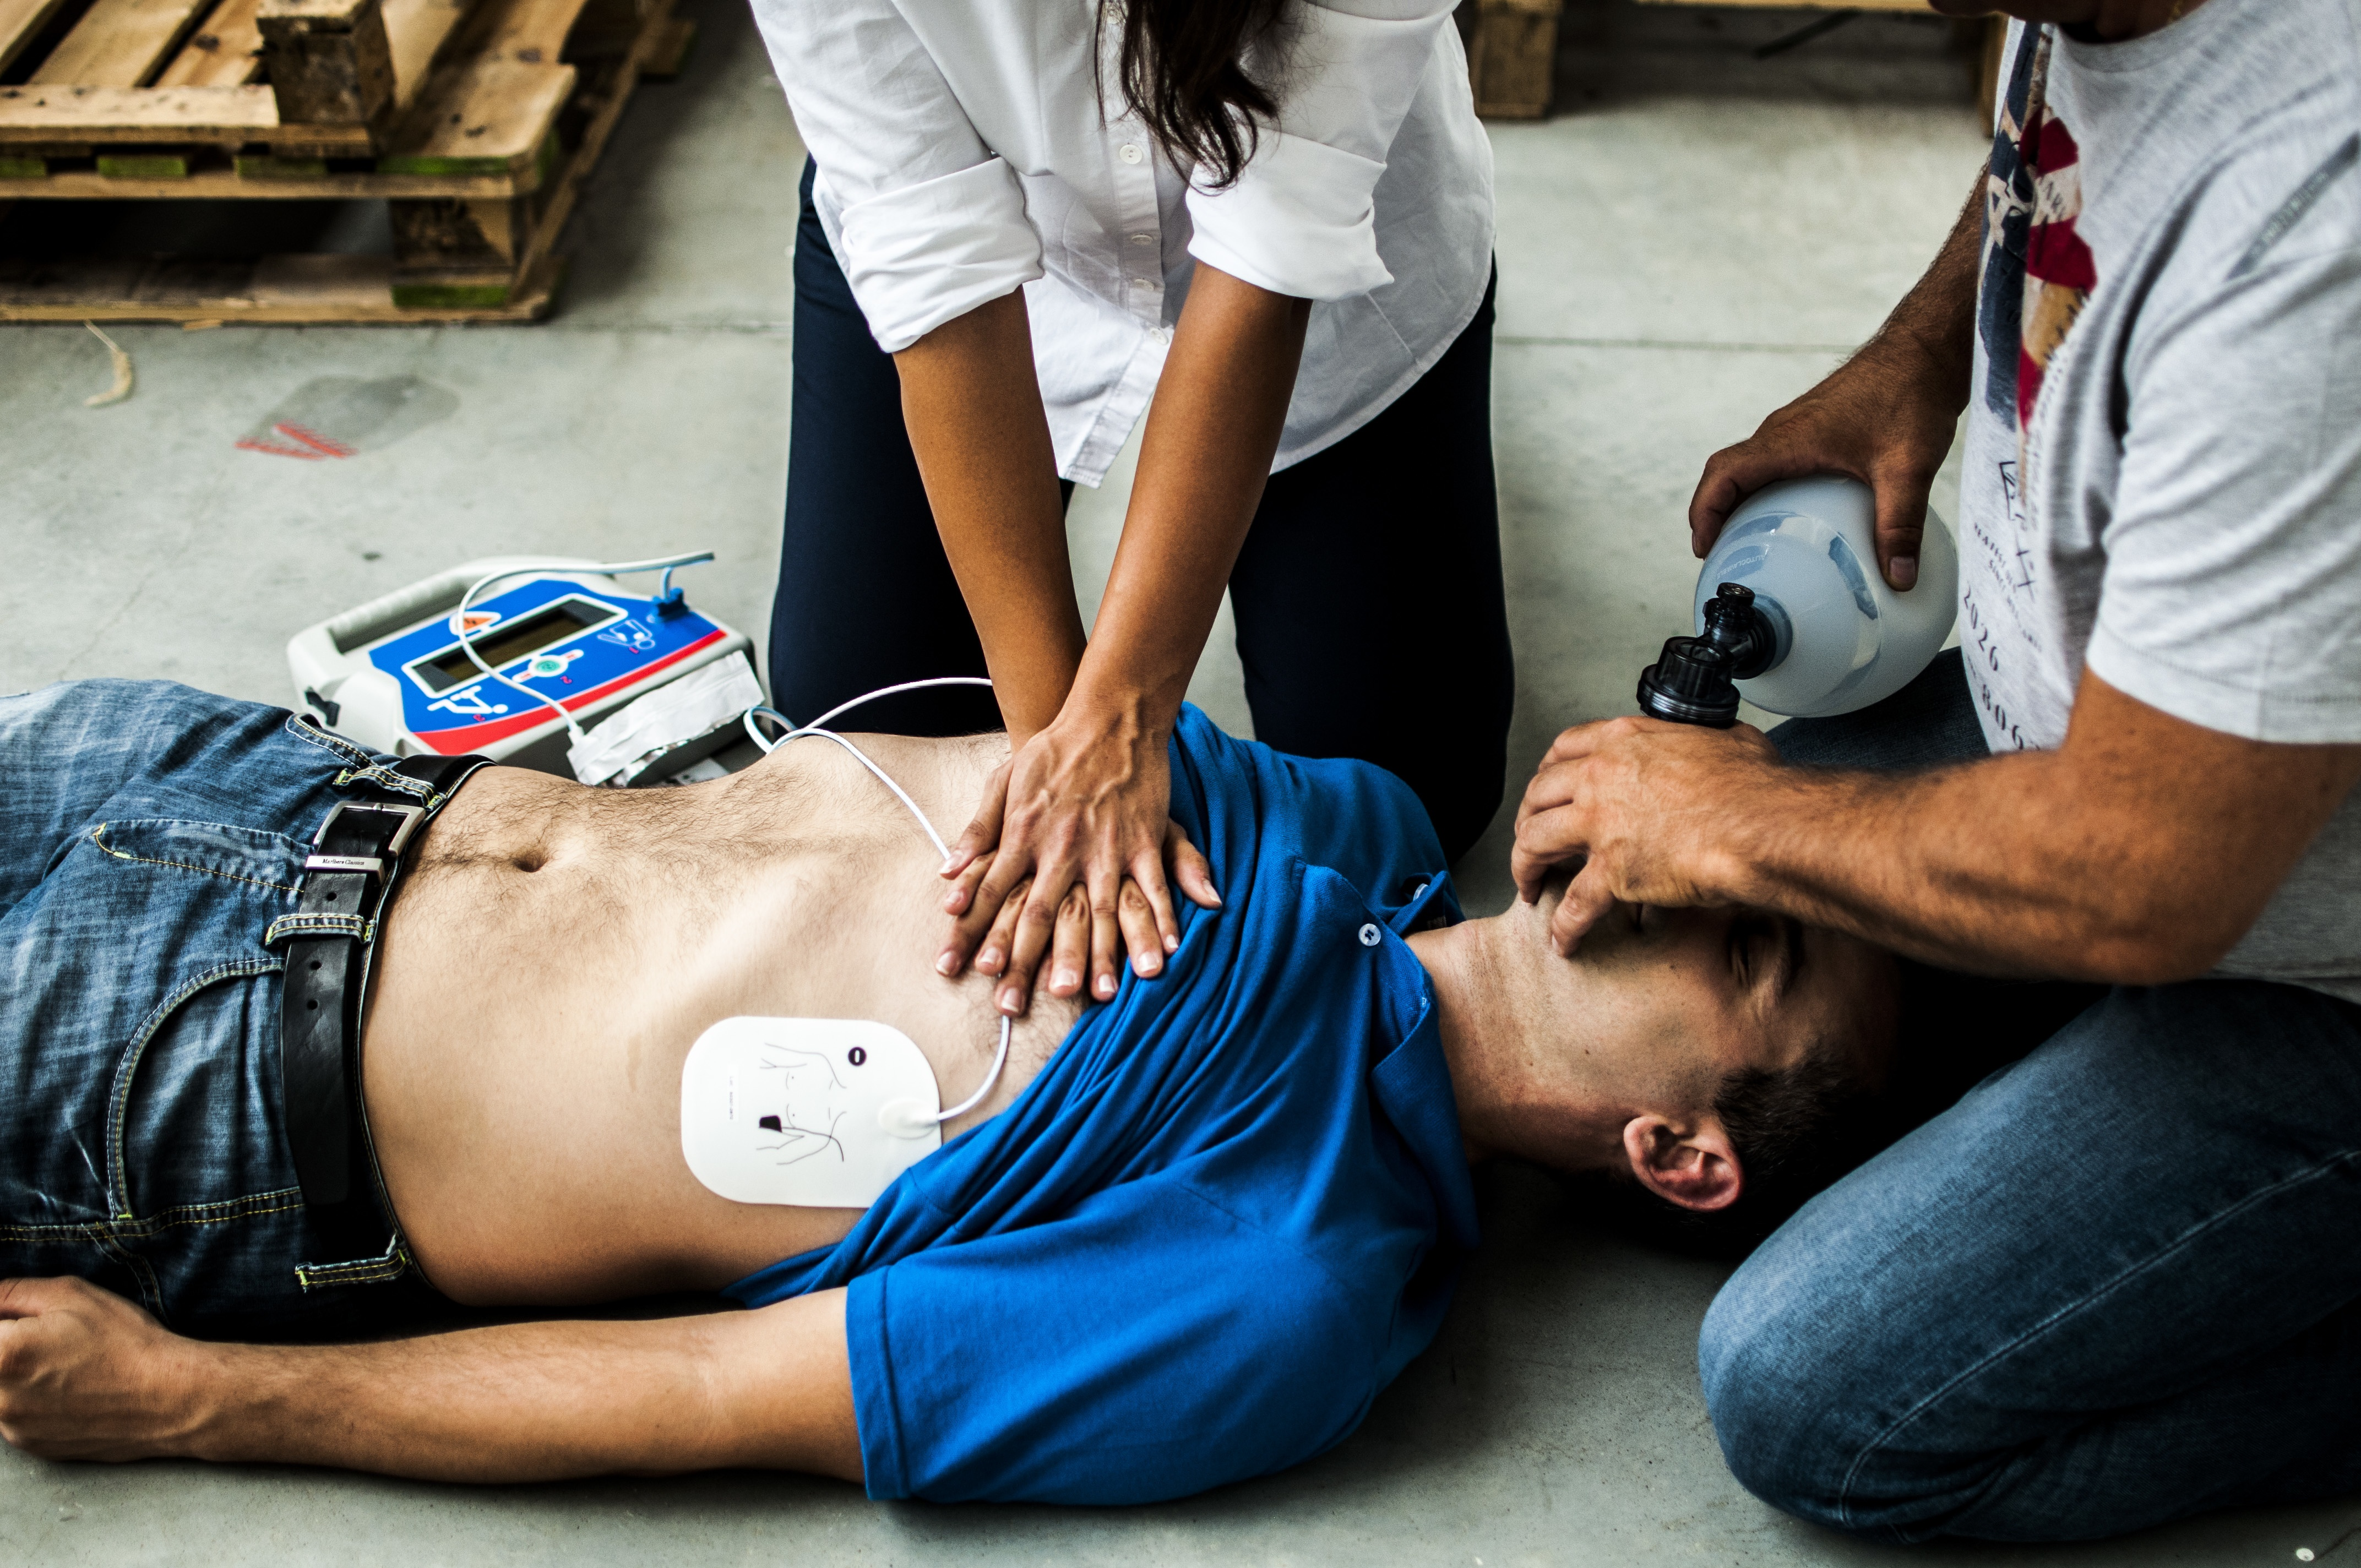 occupational-first-aid-training-vancouver.jpeg